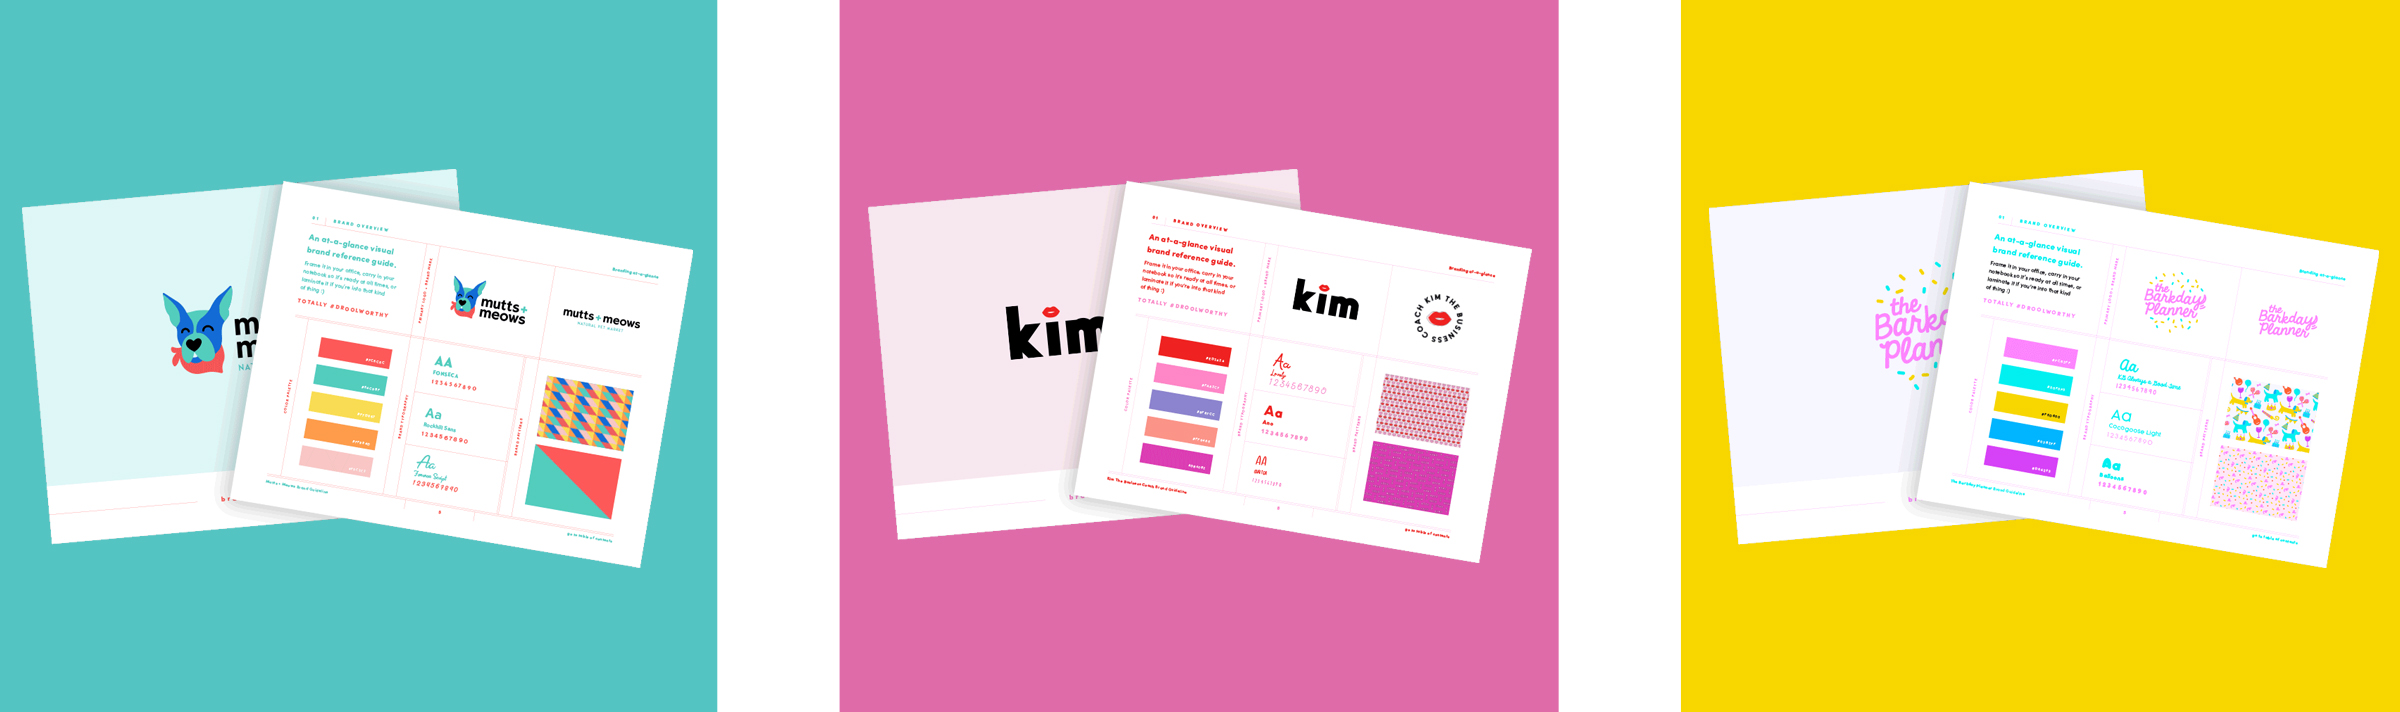 Three client brand guideline documents